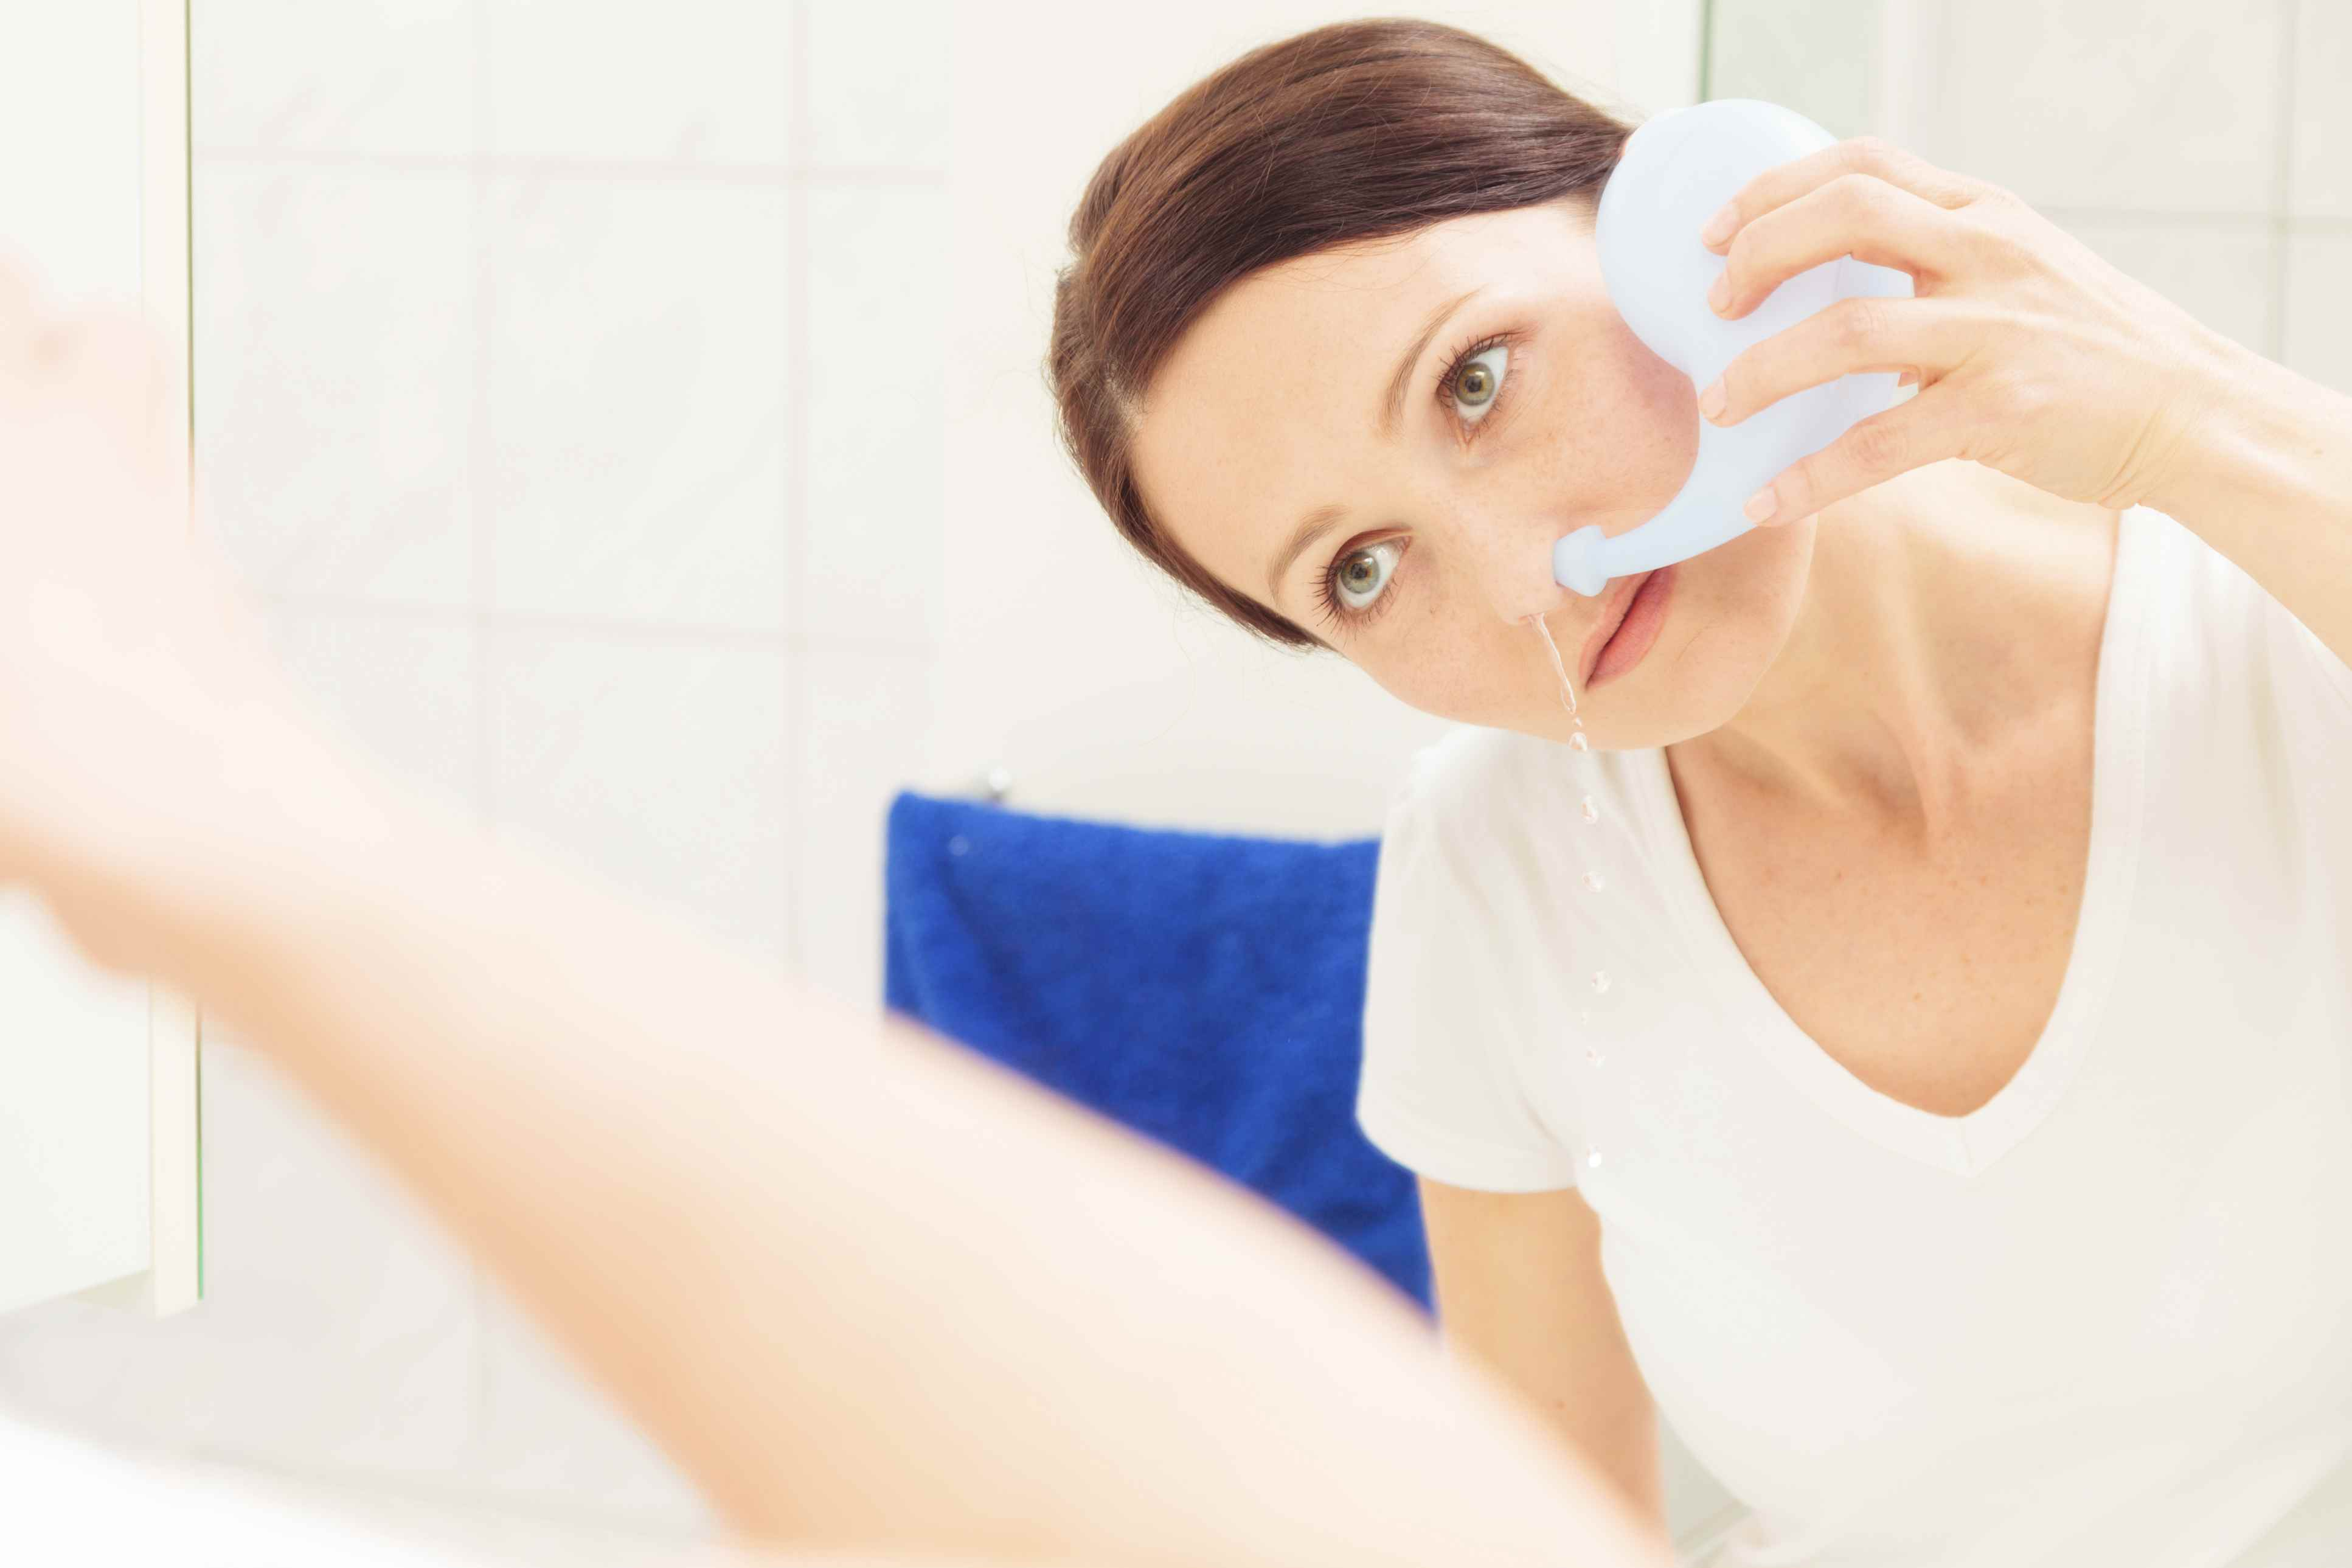 How to Rinse Your Sinuses